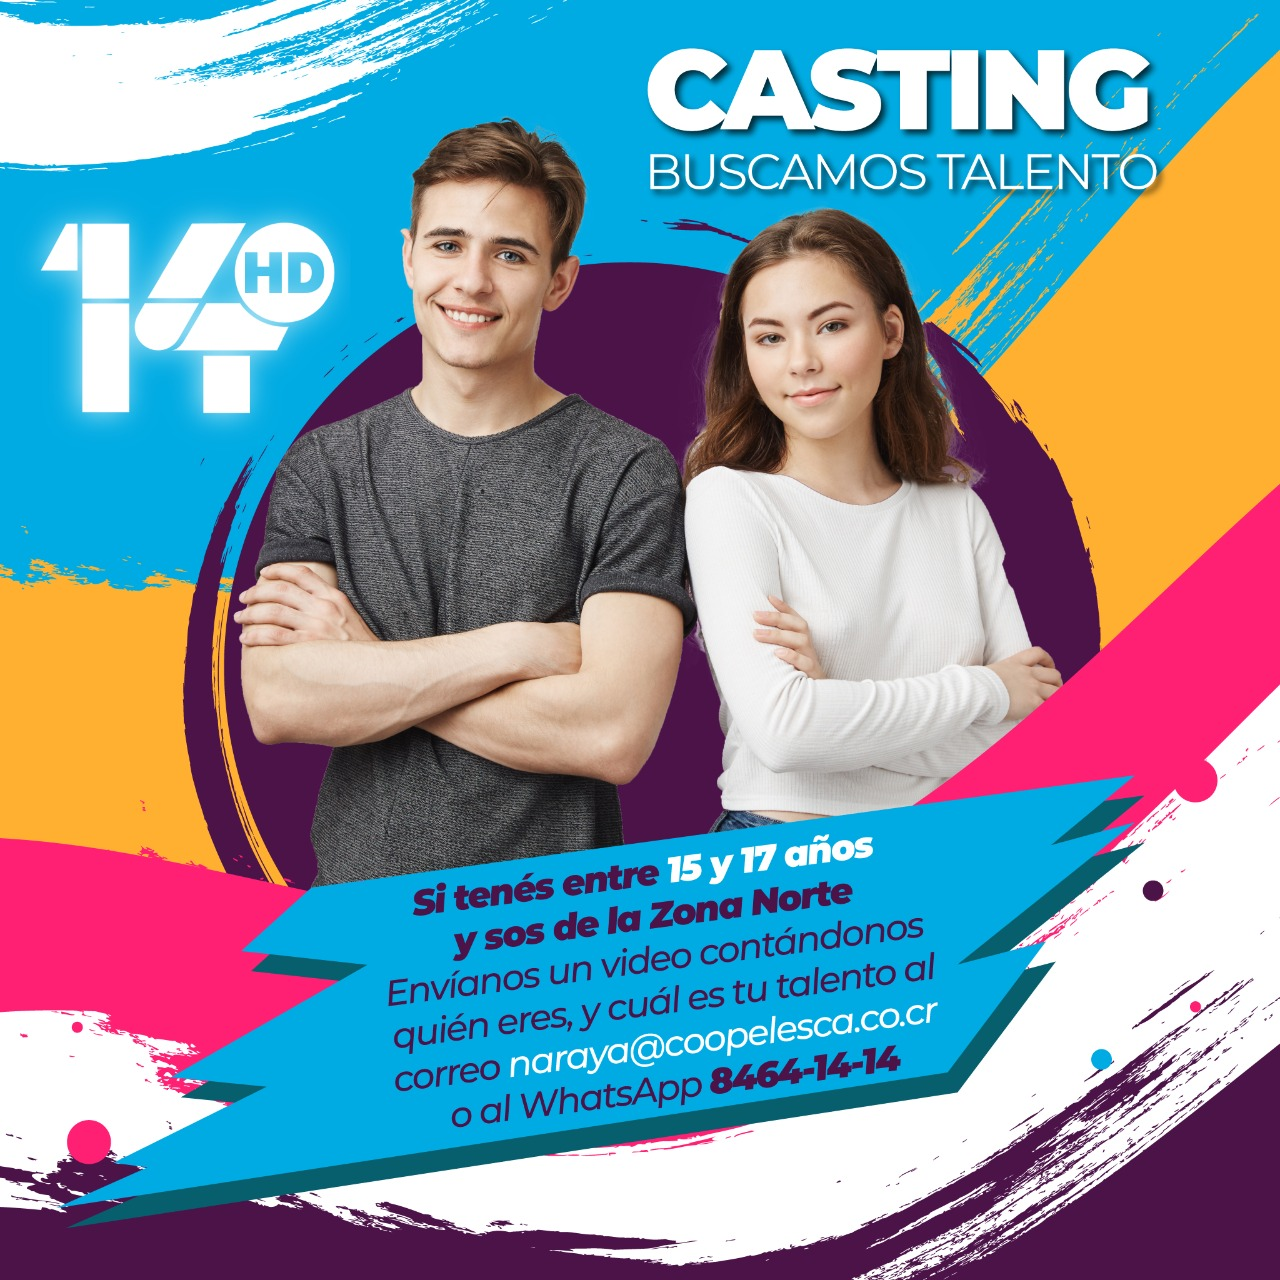 TVN Canal 14 inicia casting